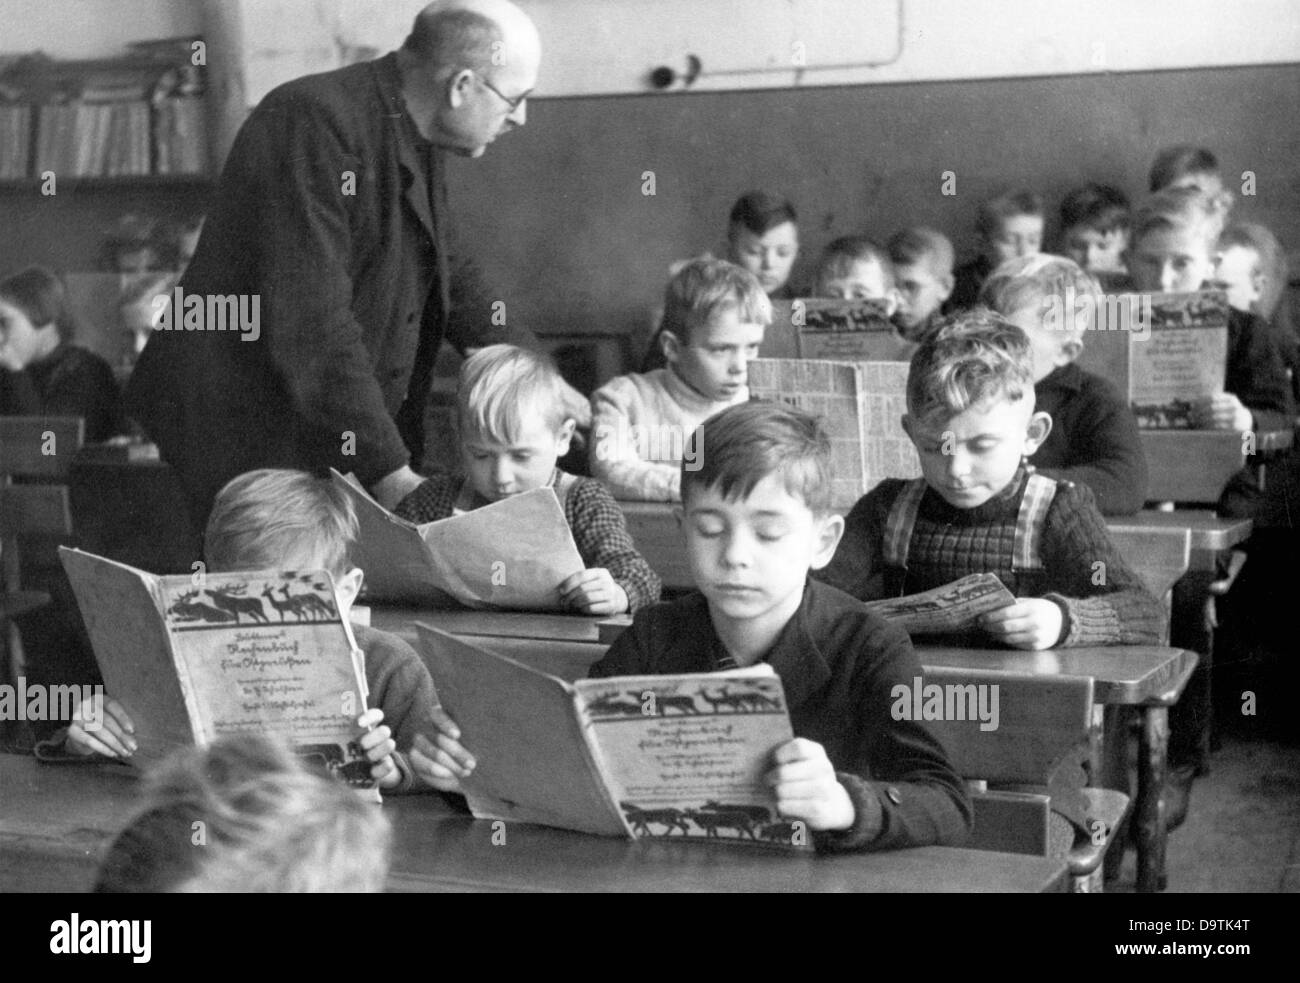 Children who were evacuated as part of the Children's Evacuation Program take part in the school lessons of - Stock Image